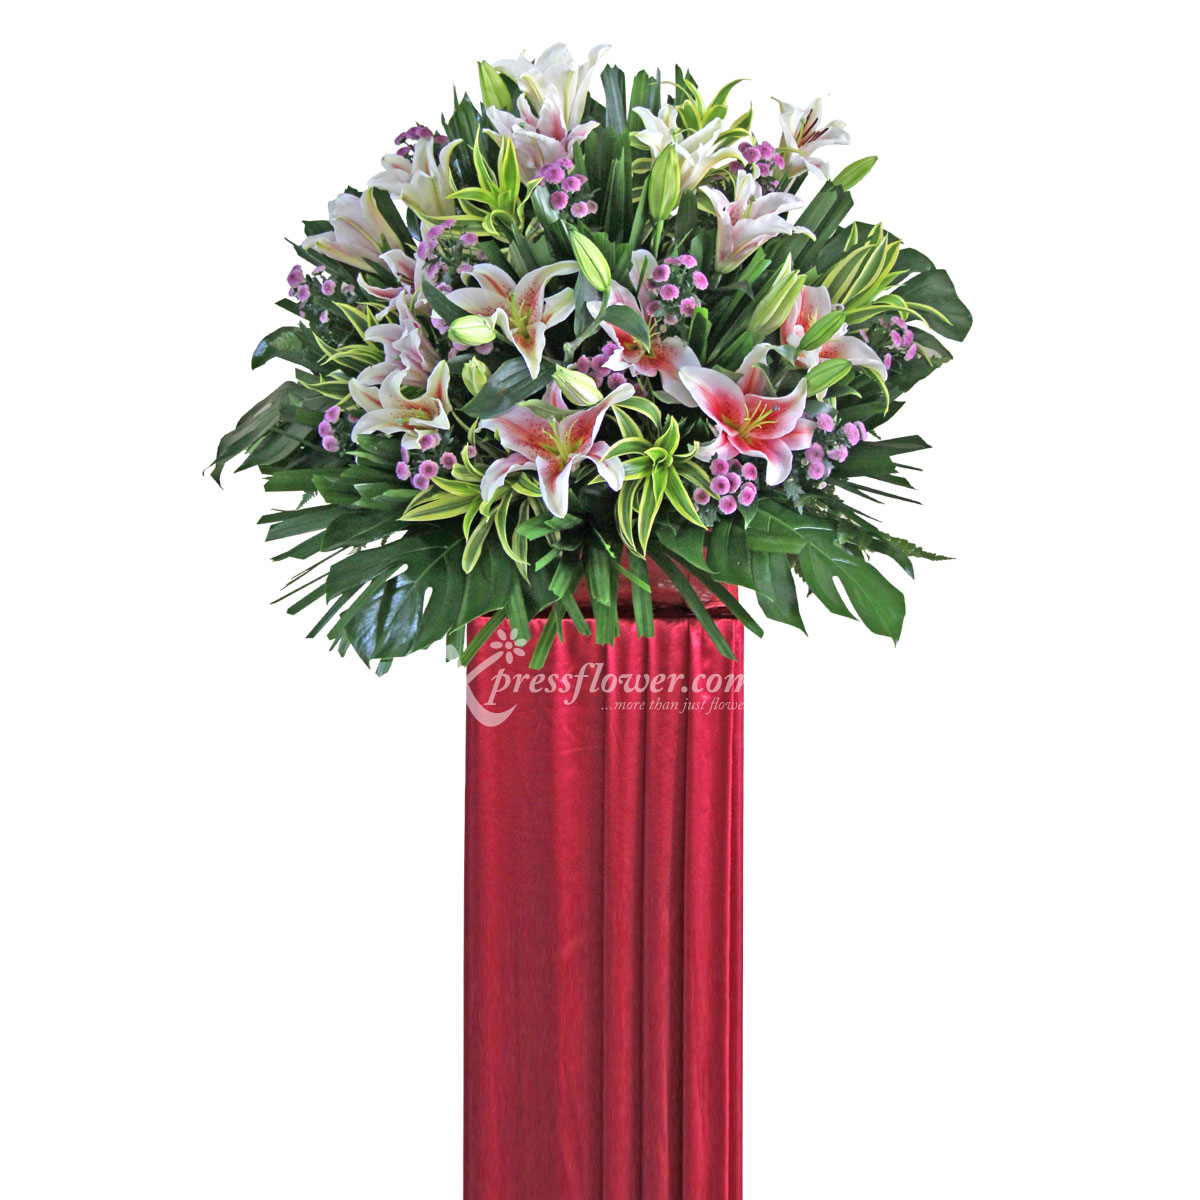 CS1707 Energetic Endeavor congratulatory flower opening stand